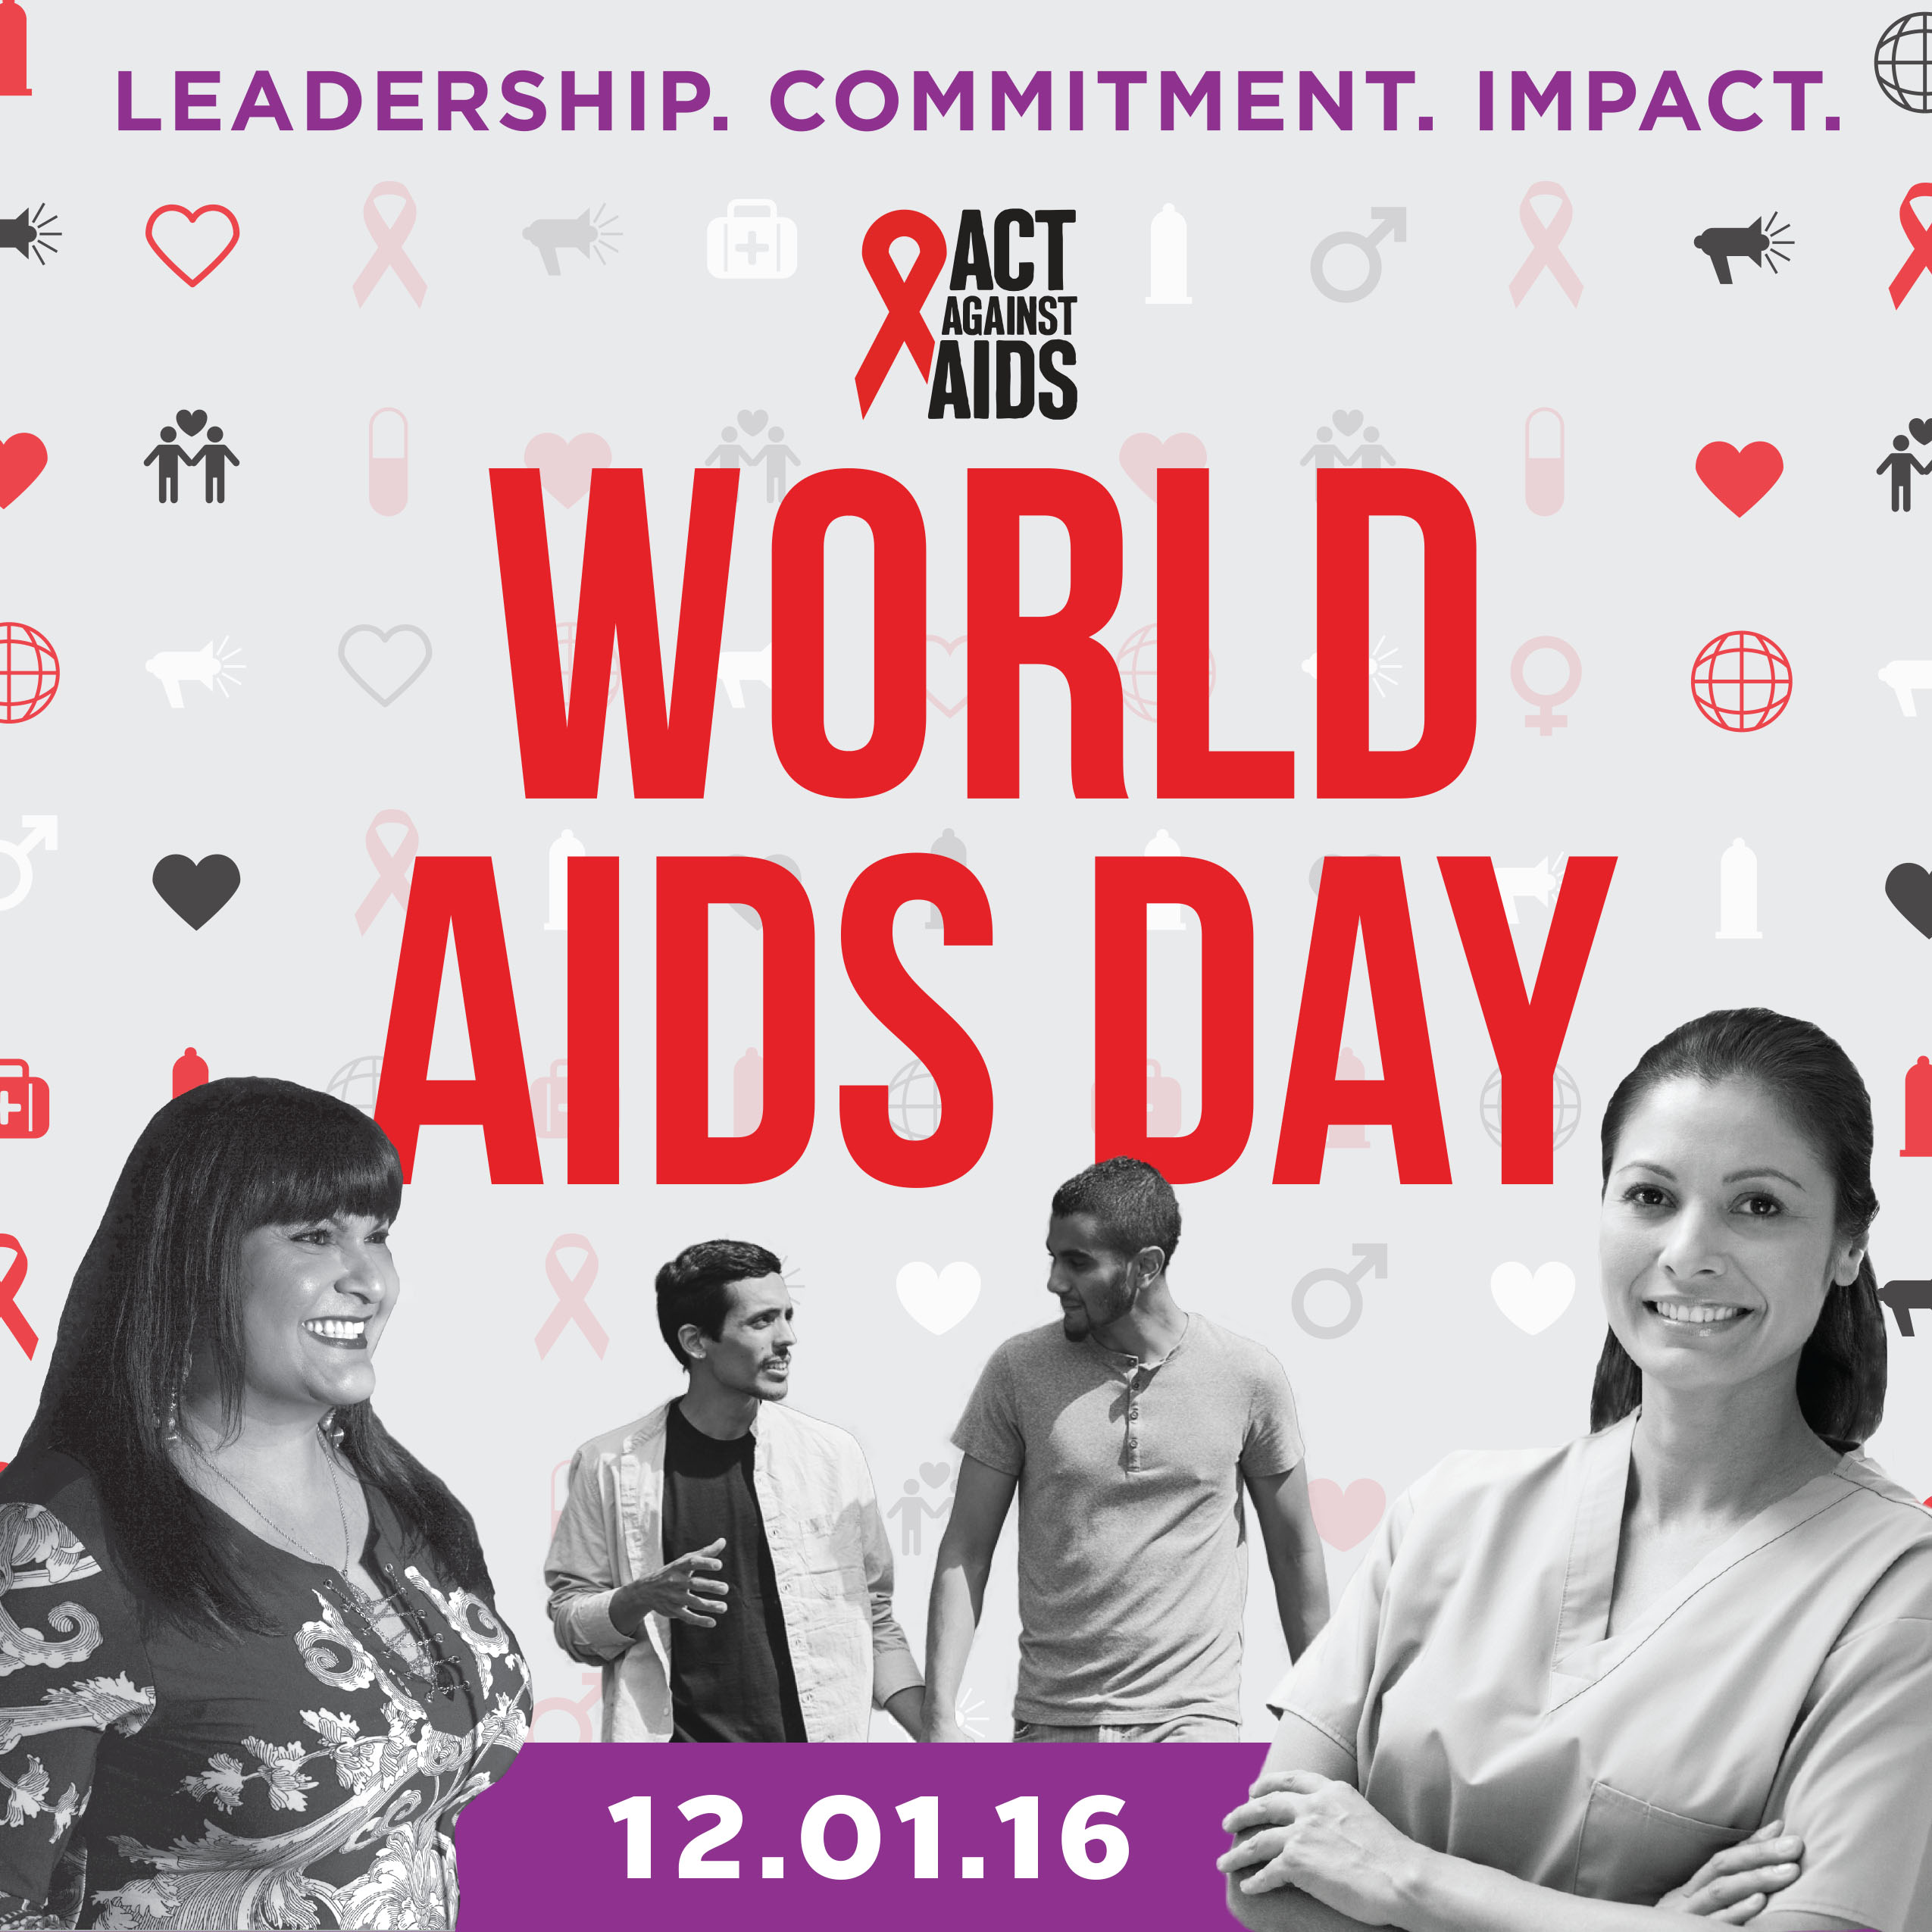 World AIDS Day 10.01.16. Leadership. Commitment. Impact. Act Against AIDS. Photo and icon montage.